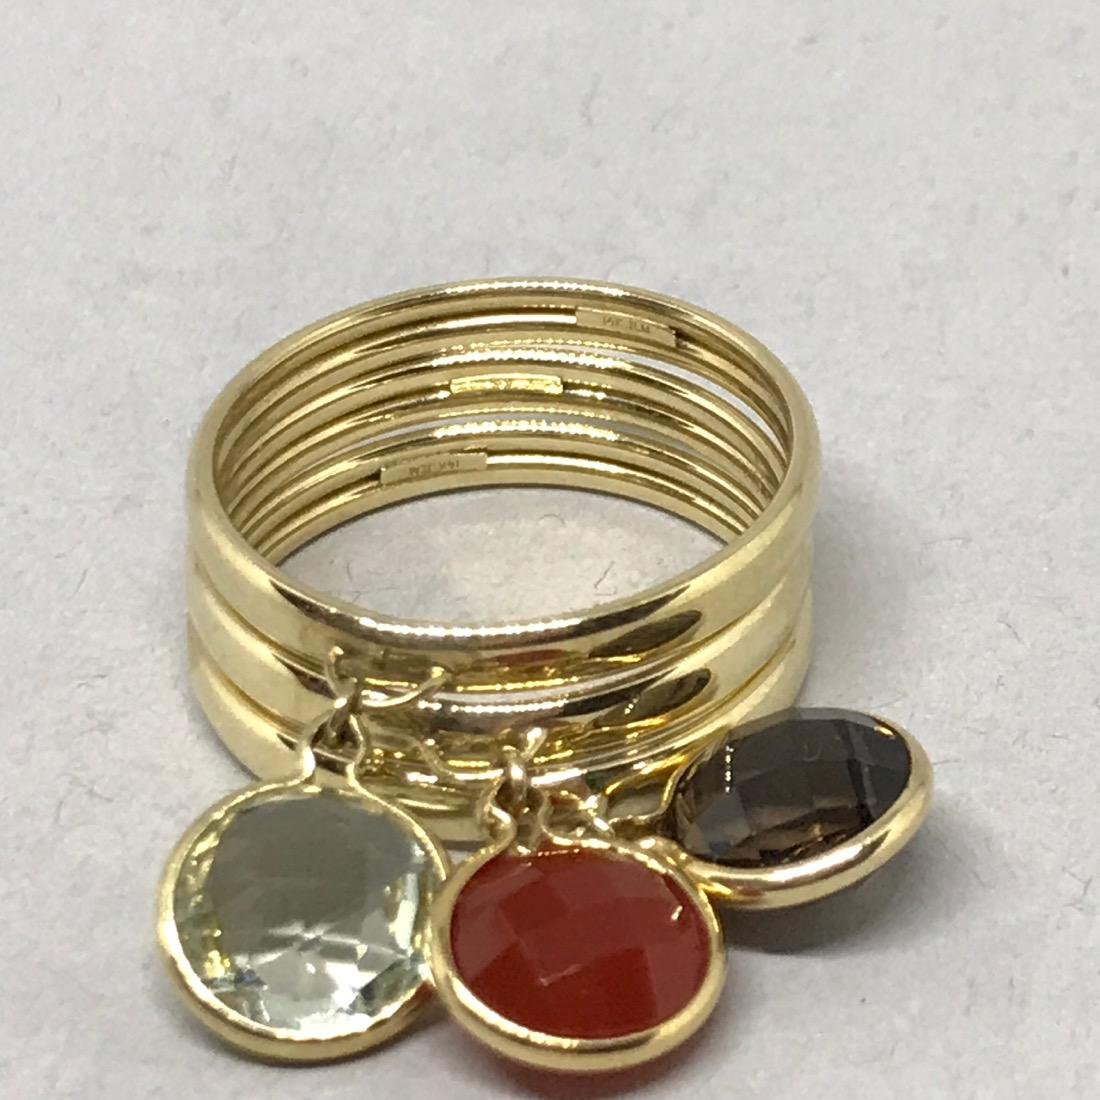 Set of 3 14K Gold Rings with Gemstone Charms - 3